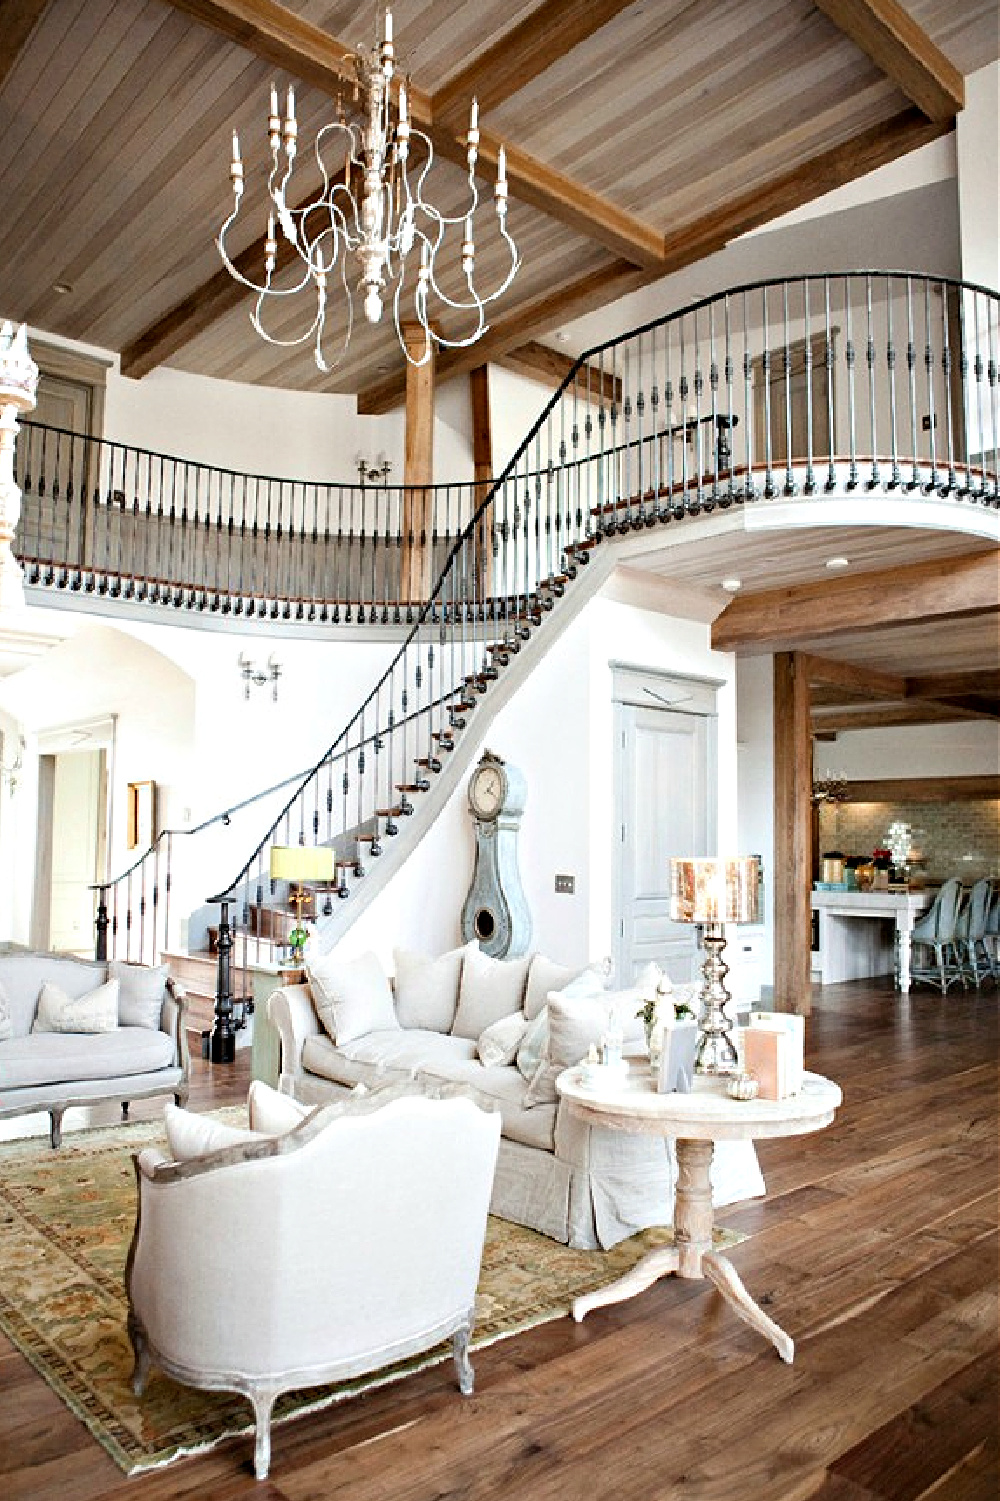 French country great room with magnificent wrought iron staircase and white decor - Desiree Ashworth. #frenchcountry #greatrooms